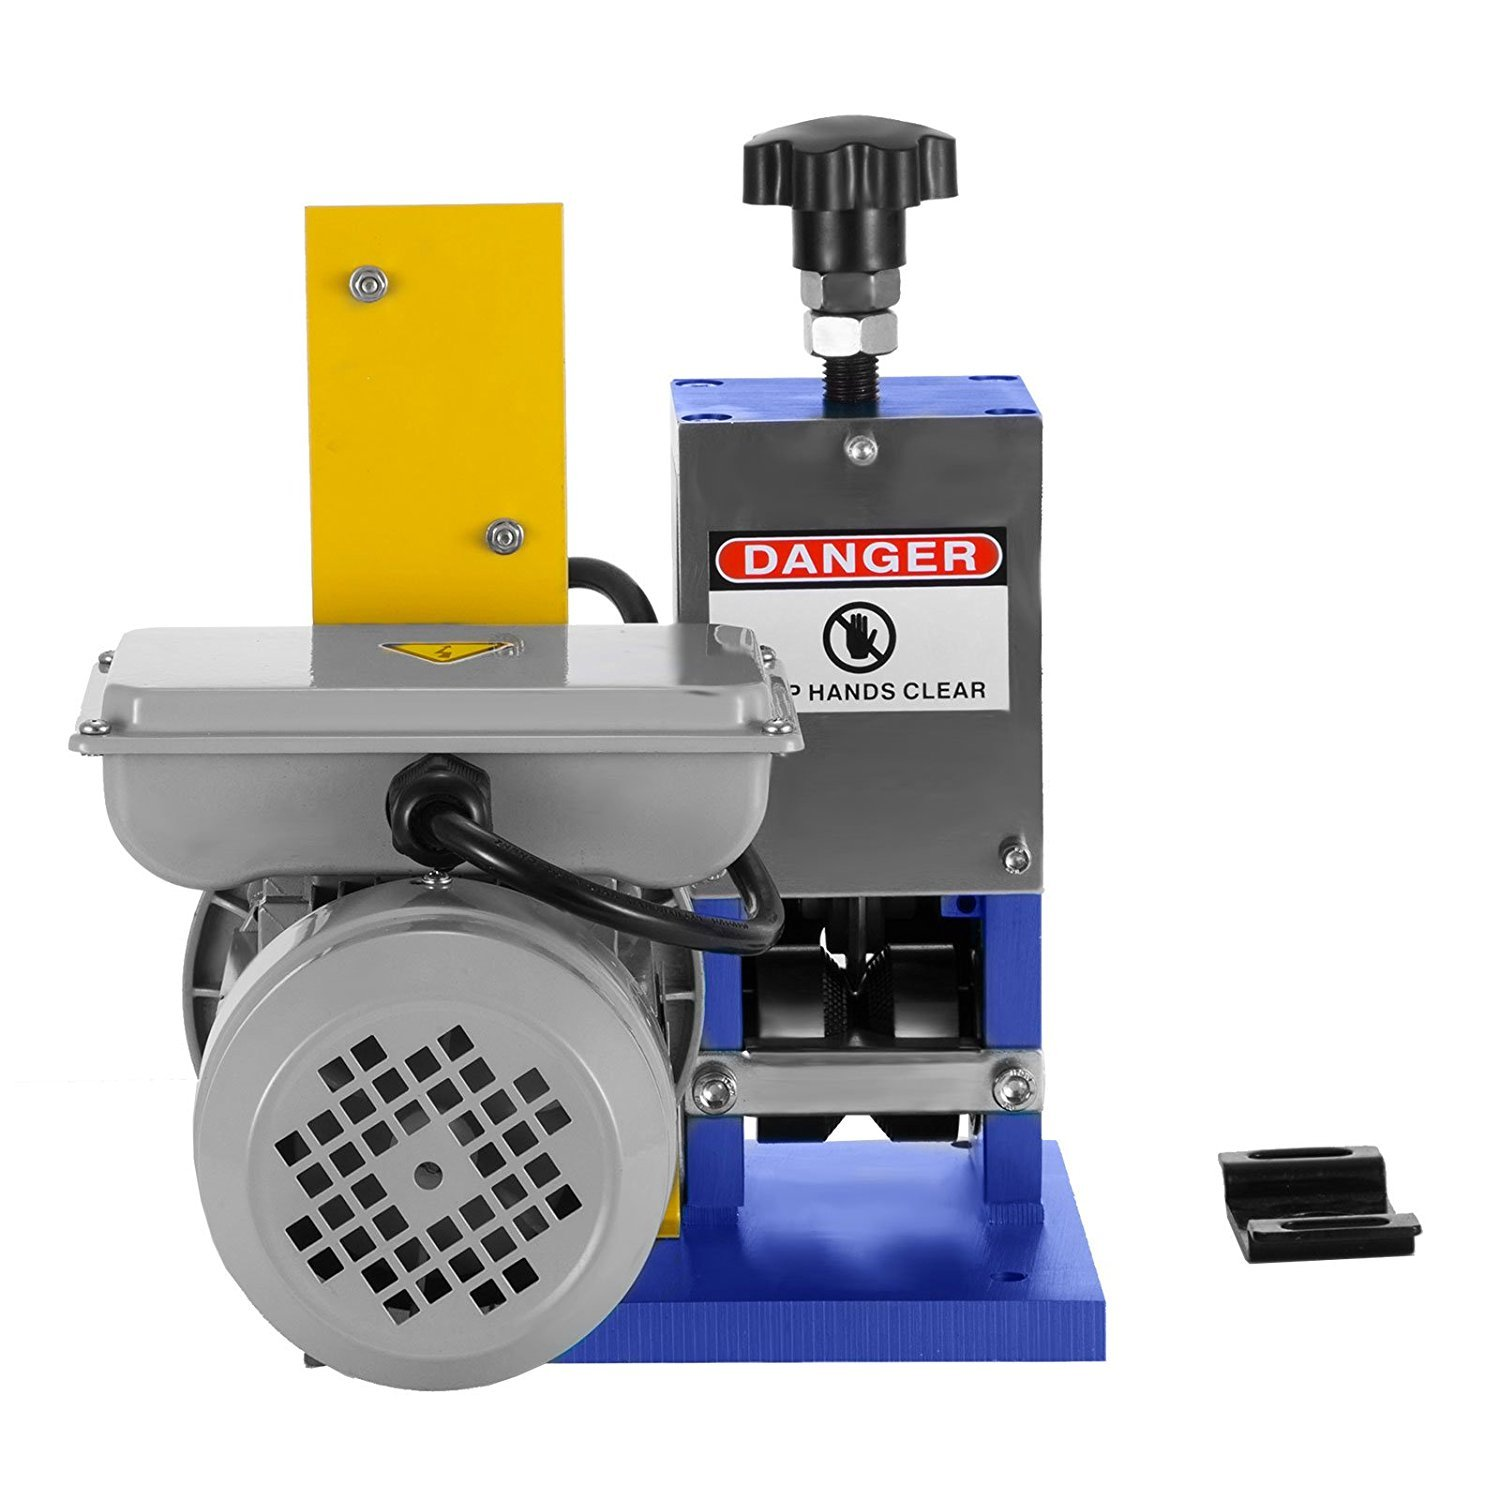 Impiclio 220V Wire Stripping Machine Wire Peeling Cutting Machine Multihole Wire Stripper Manual Cable Wire Stripping Machine (Φ 1.5mm-Φ 20mm)